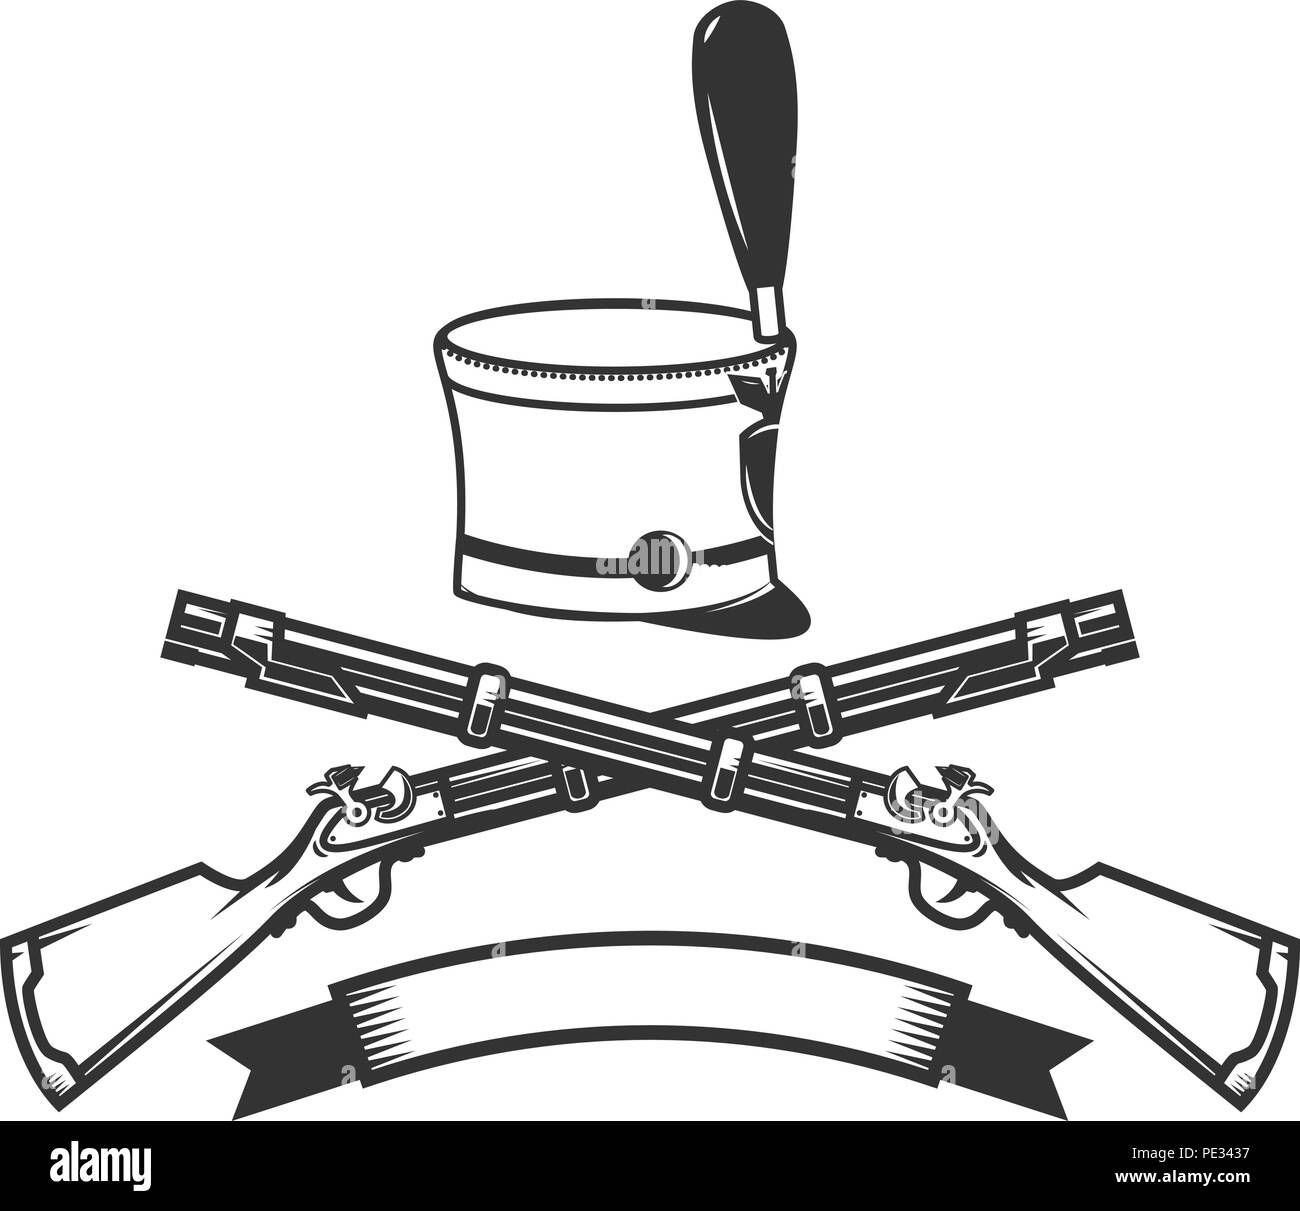 Emblem Template With Crossed Rifles And Hussar Hat Design Element For Logo Label Sign Vector Image